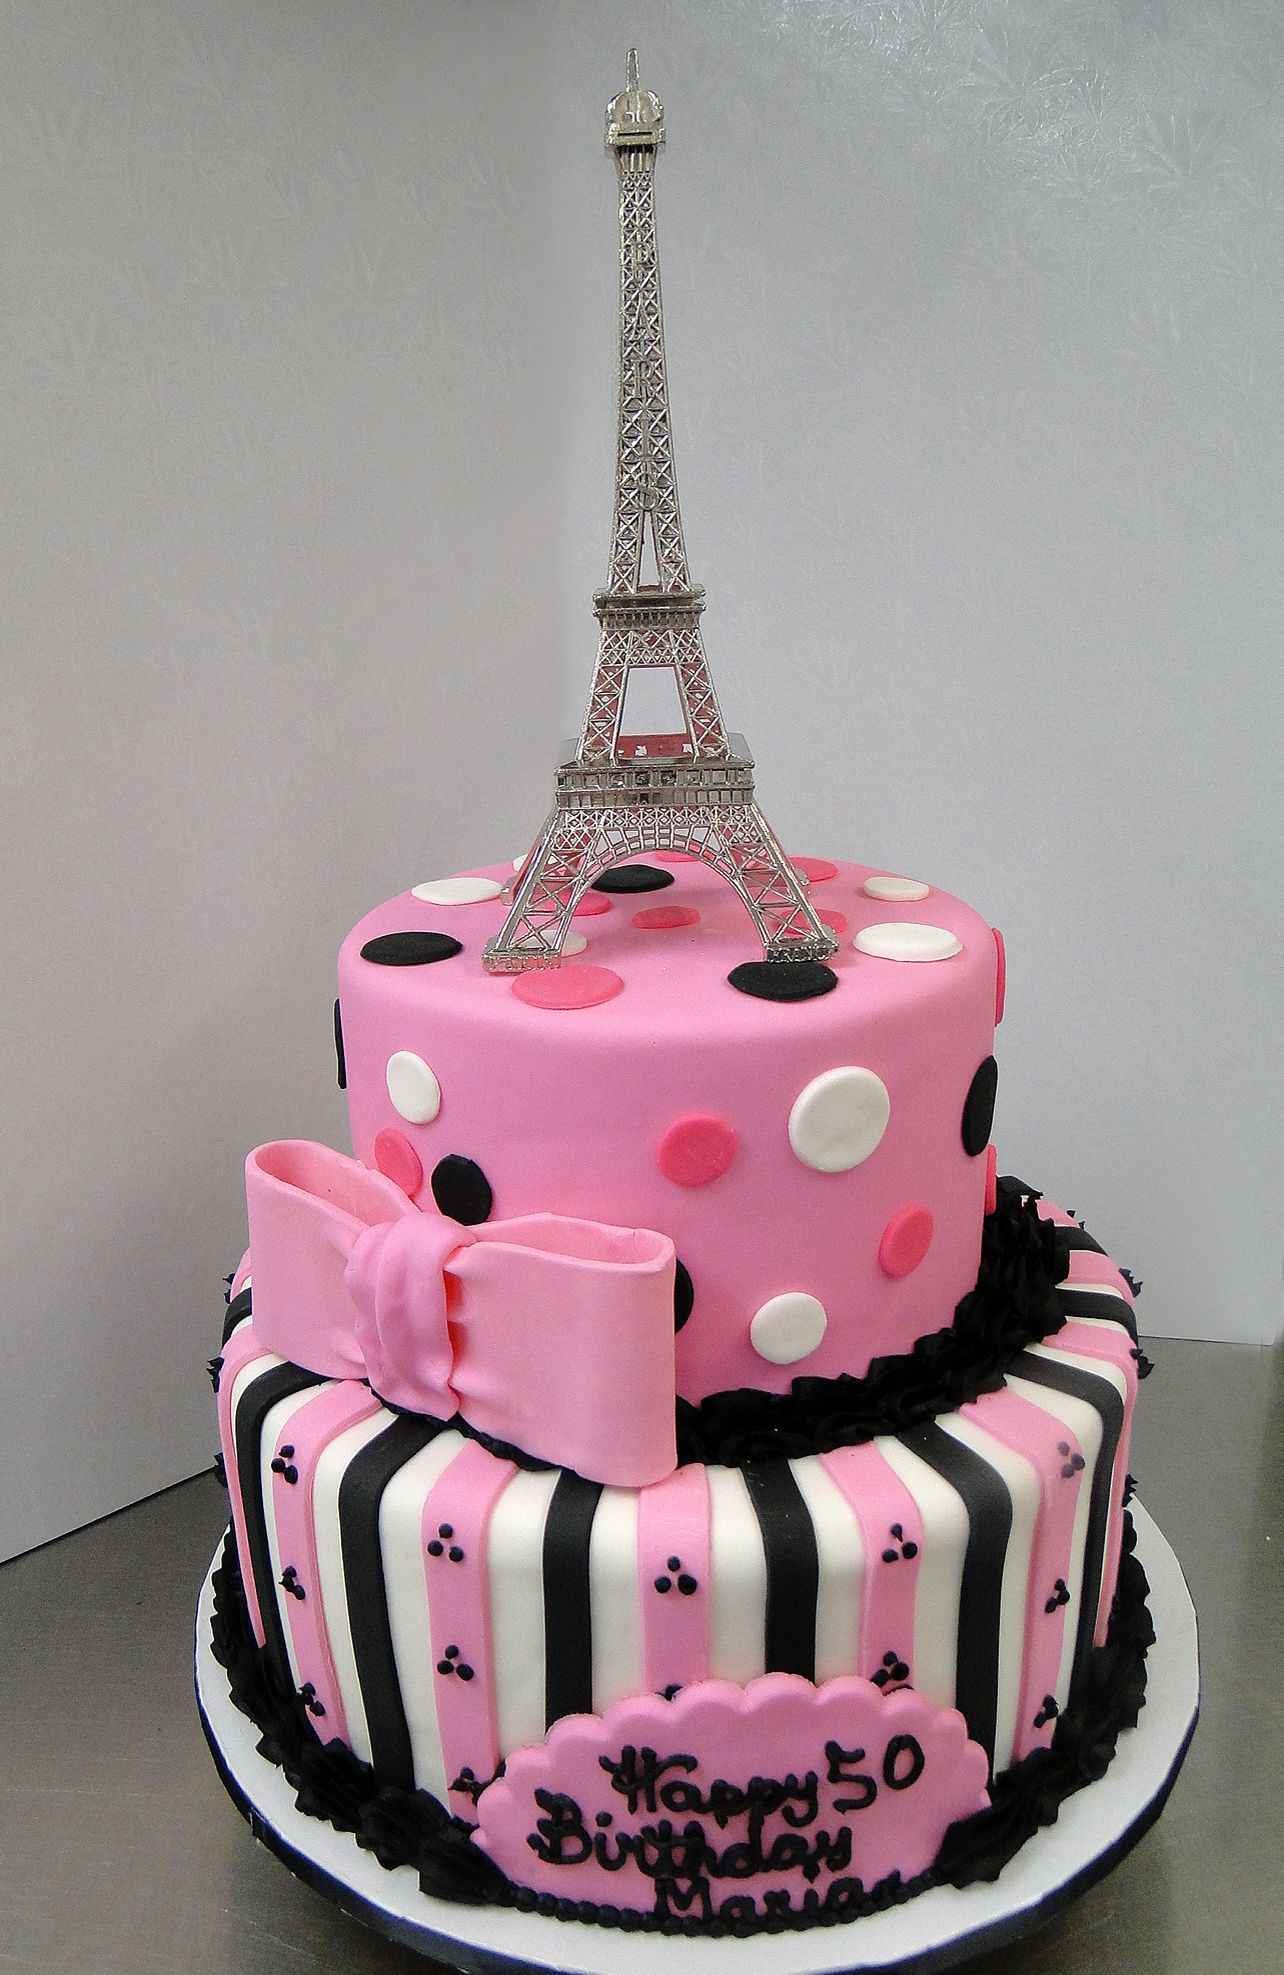 Its Paris In The Springtime With This Eiffel Tower Birthday Cake